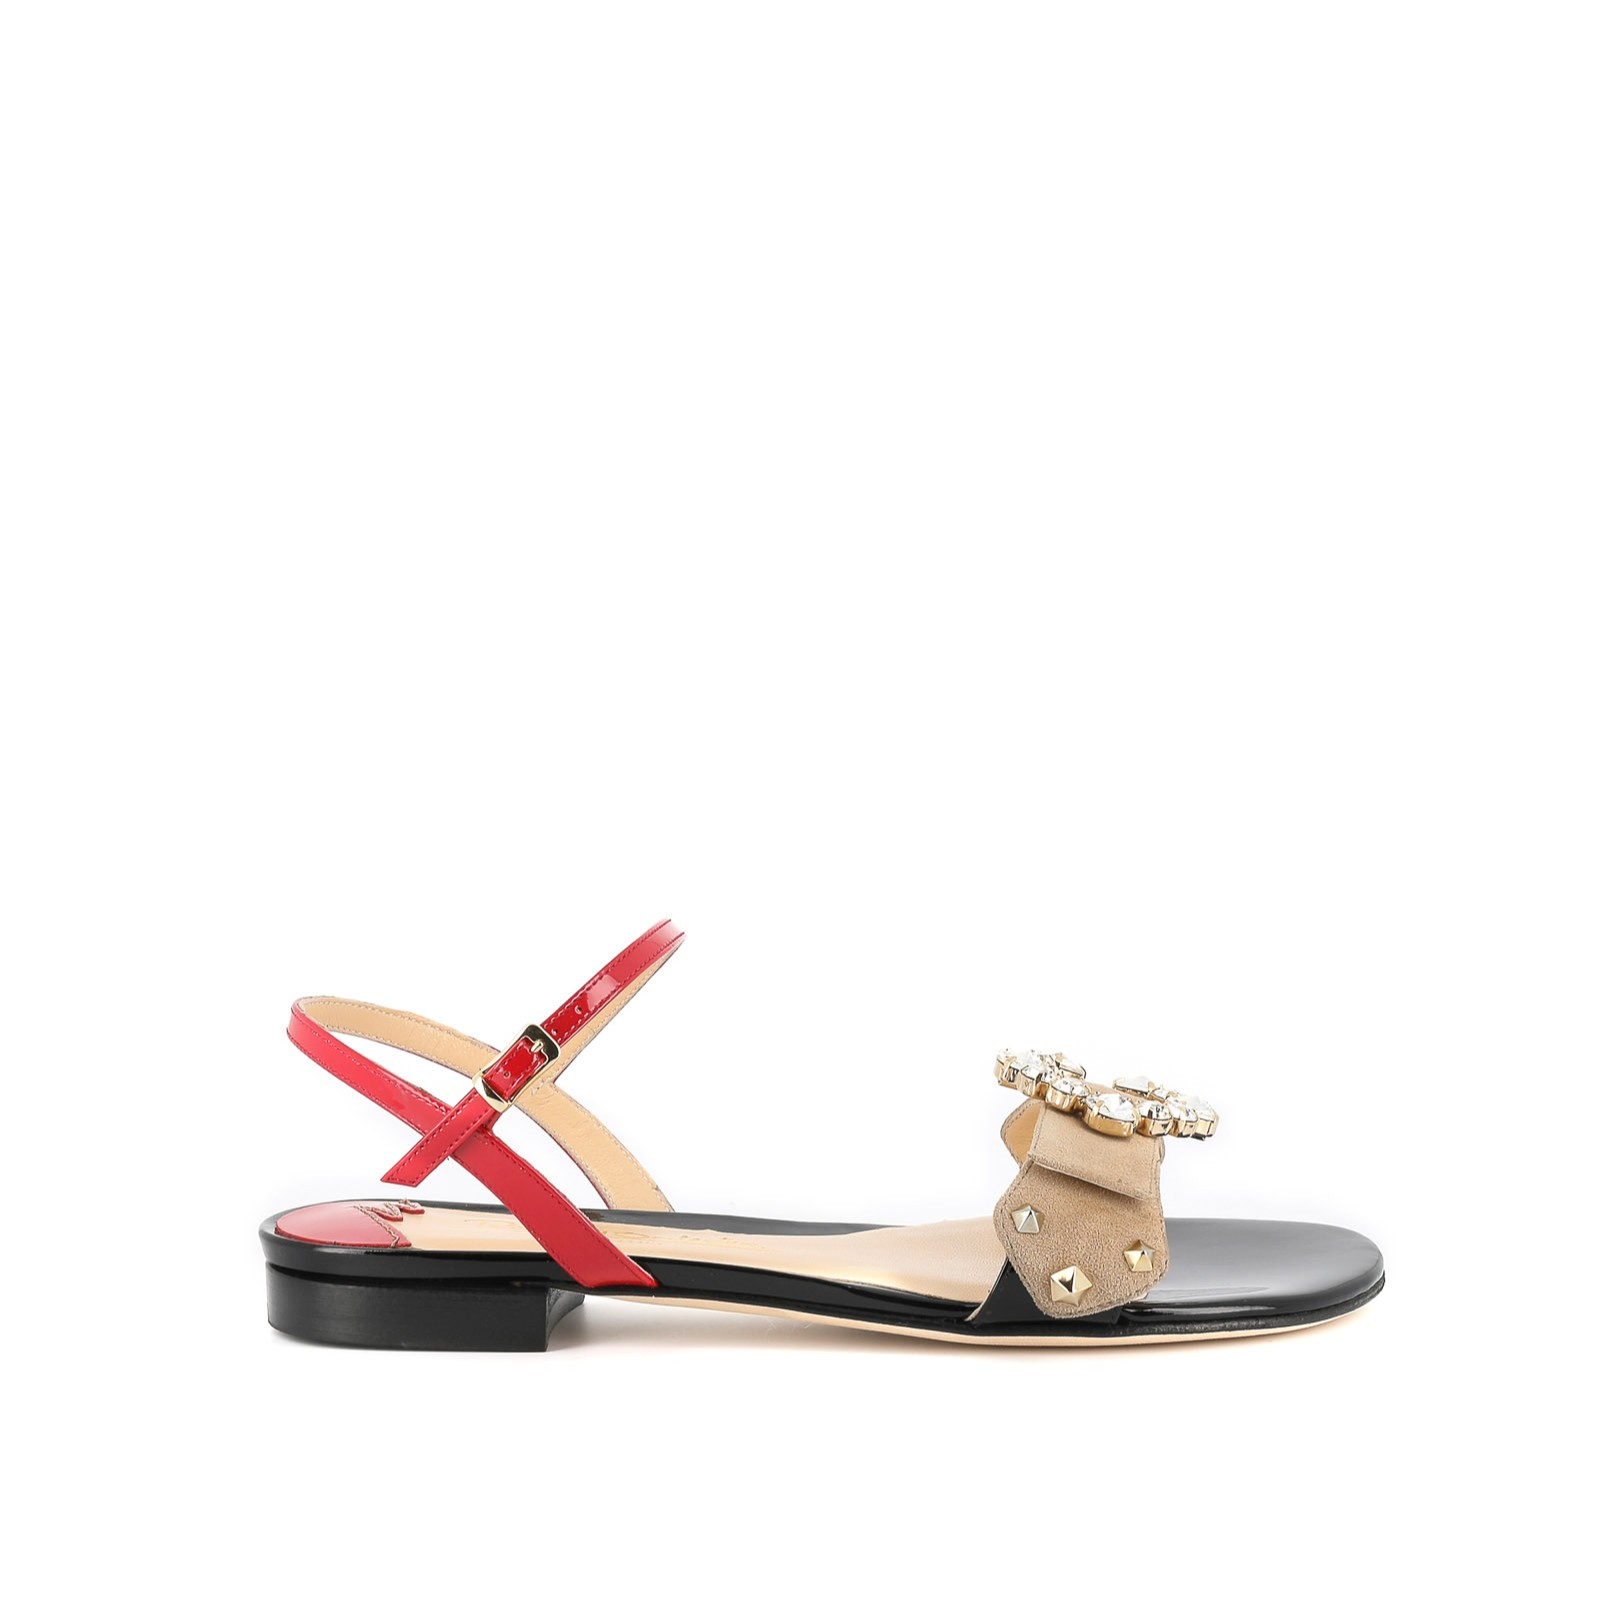 Red Chic Sandals